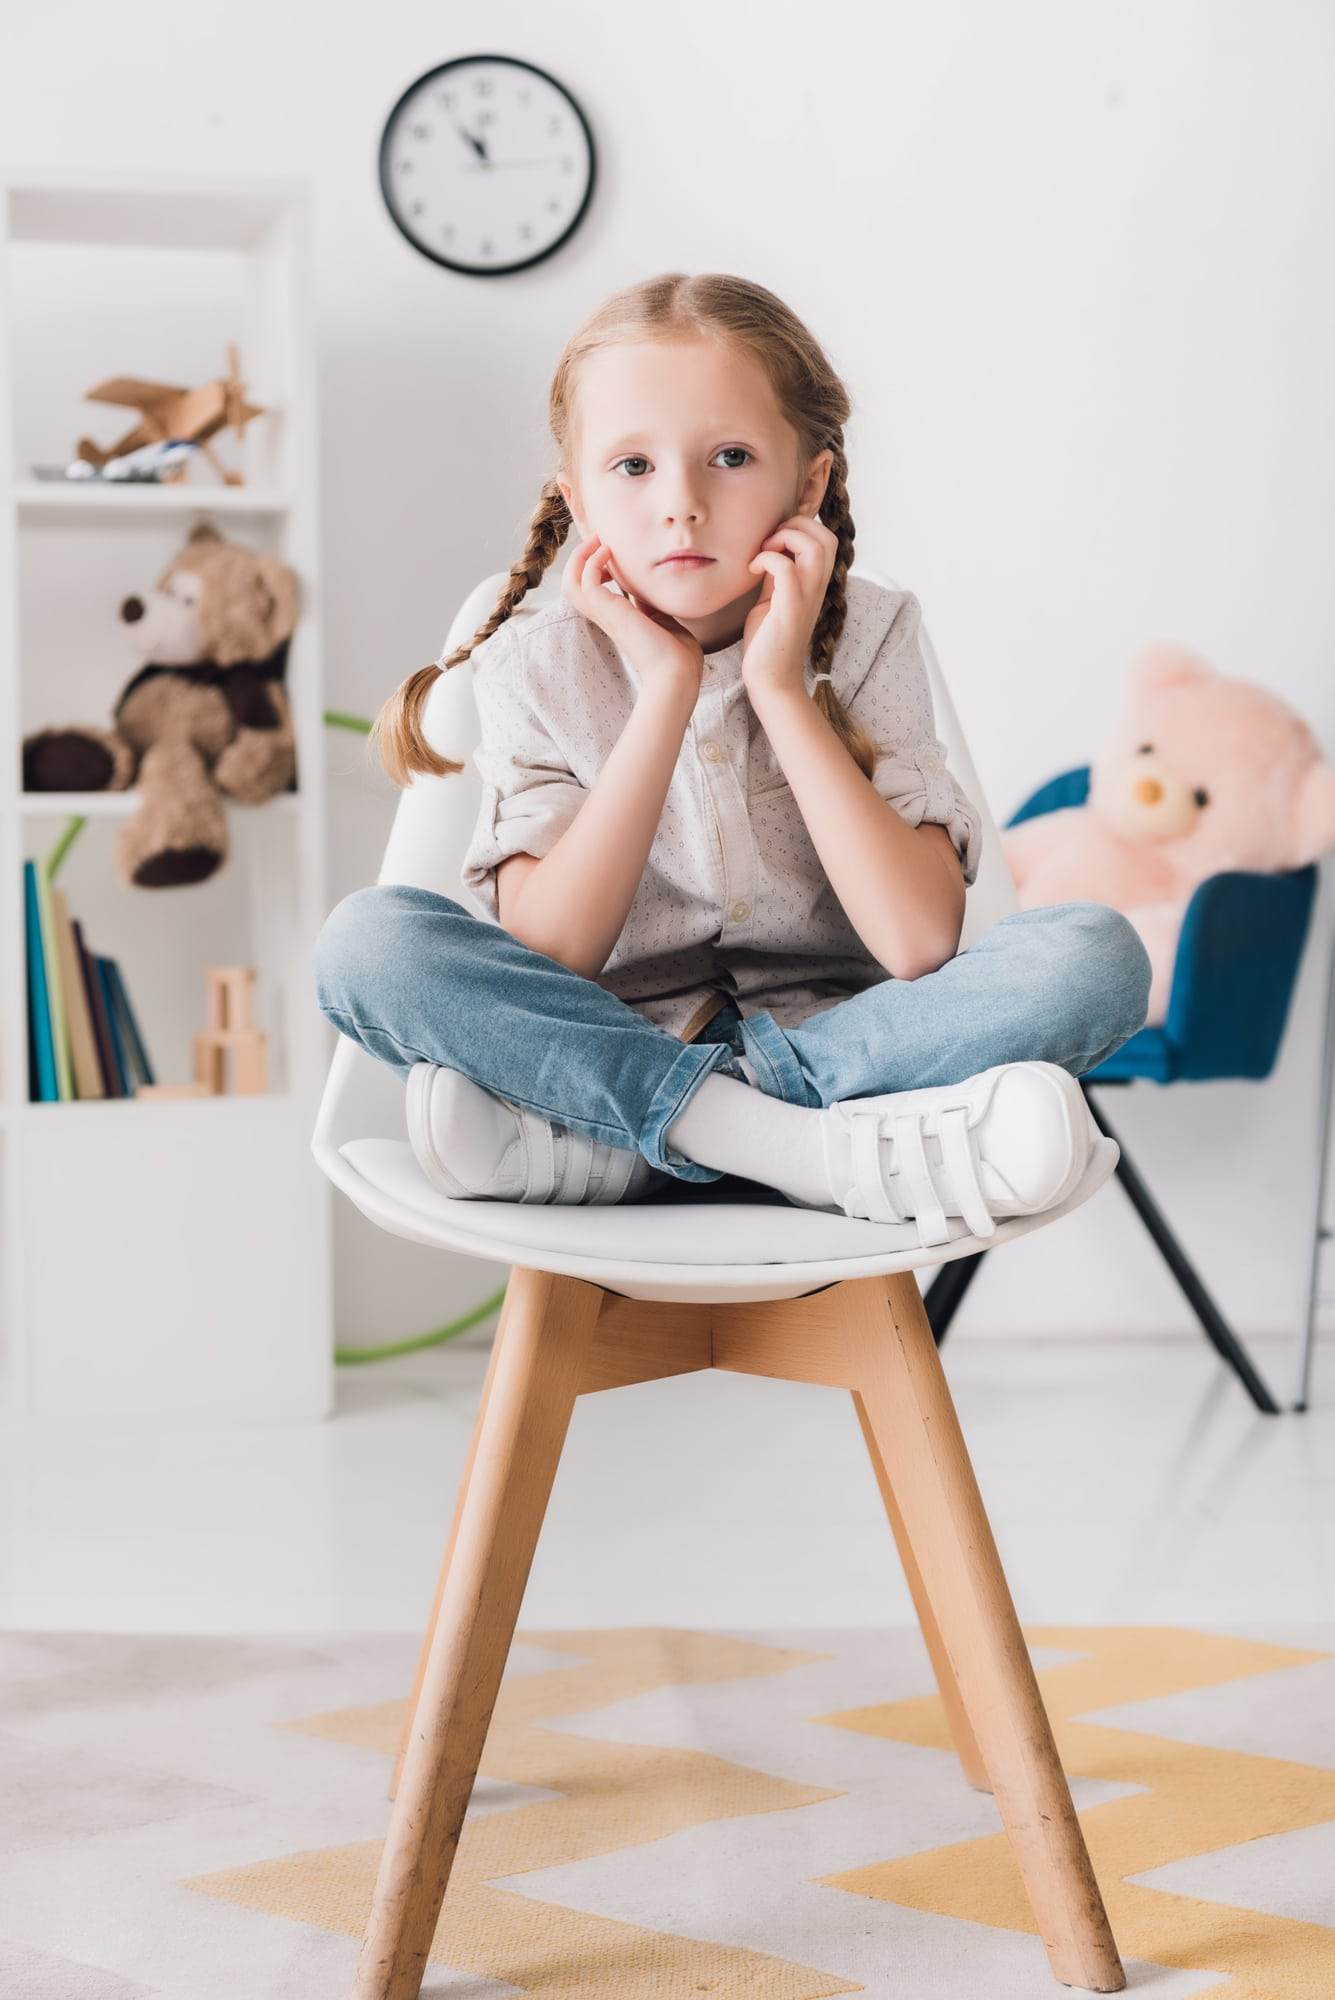 How to Raise an Extrovert Child When You Are an Introvert